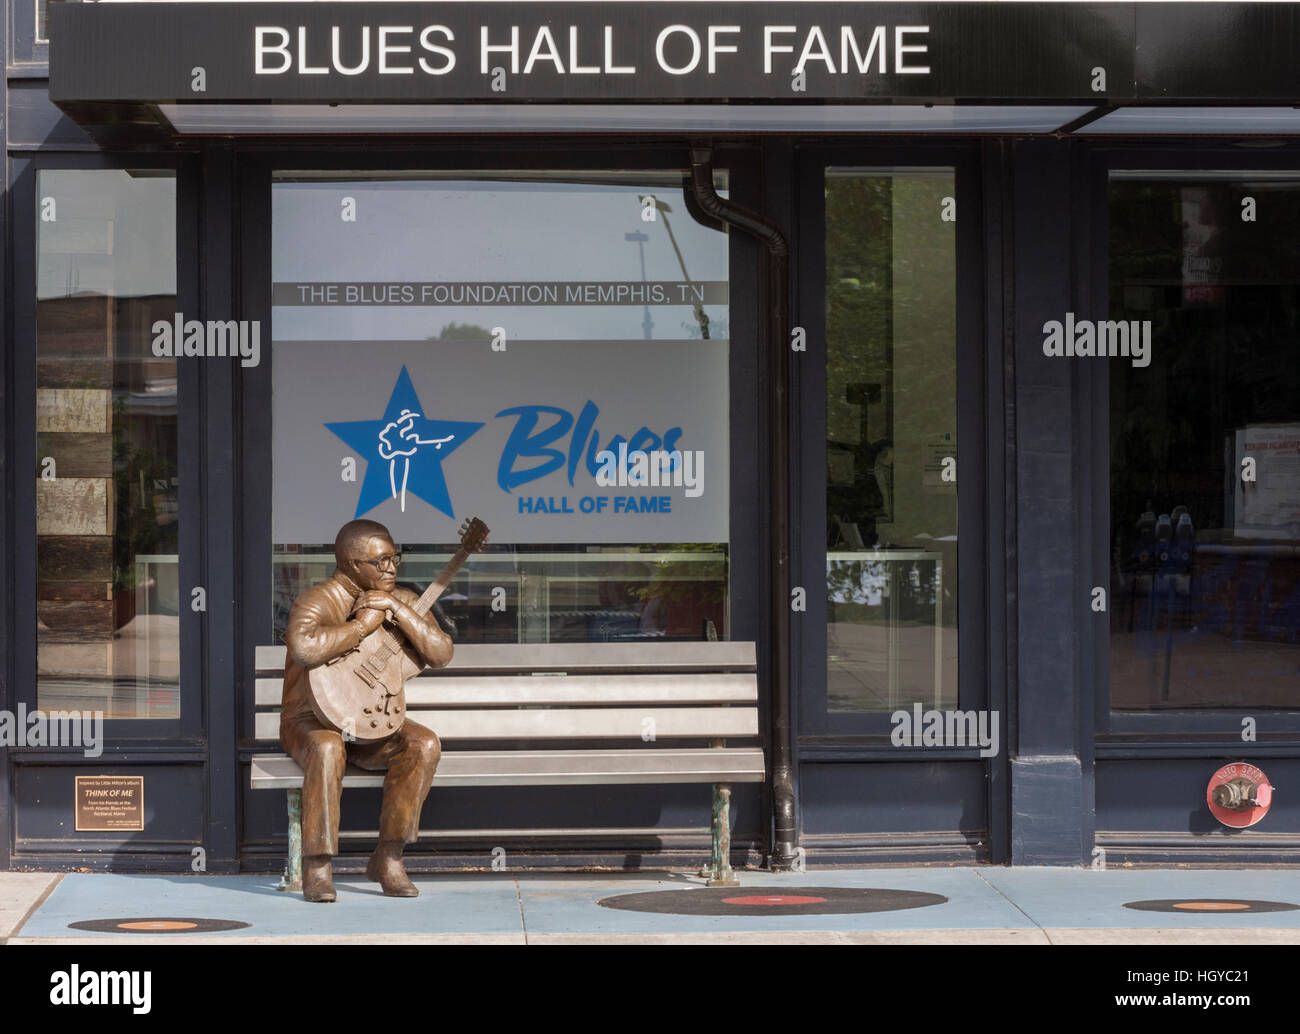 Blues Hall of Fame, downtown Memphis, Tennessee, USA - Stock Image